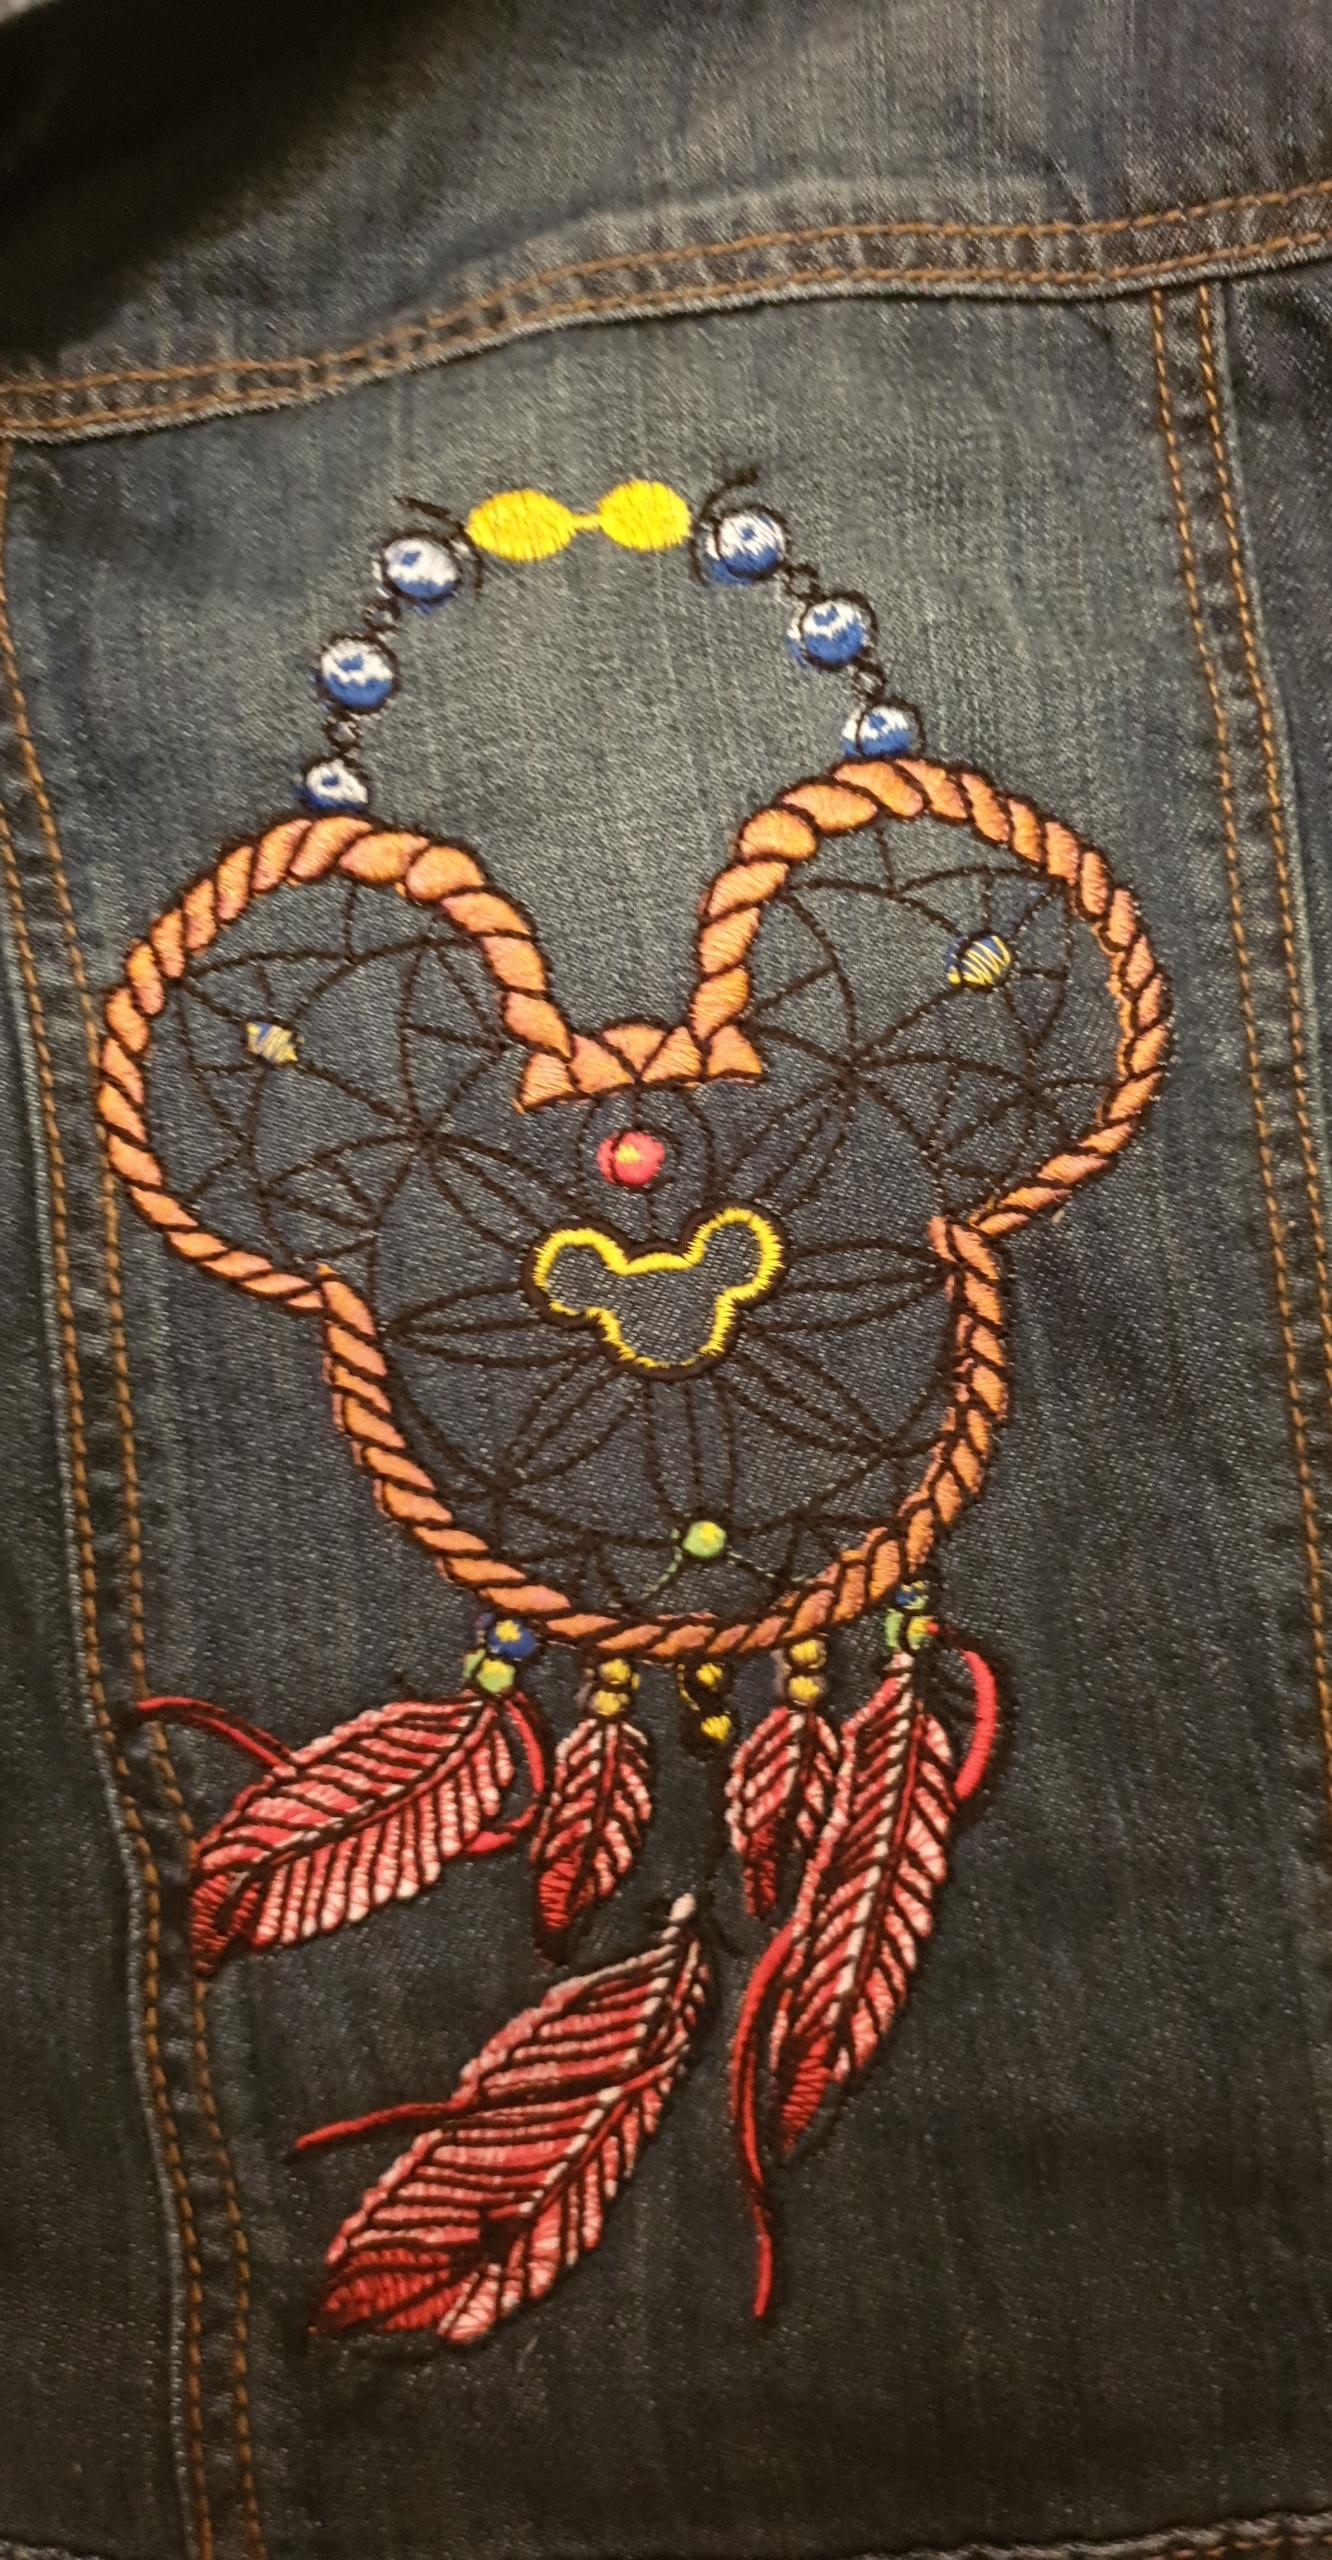 Embroidered jeans jacket with Mickey dreamcatcher design